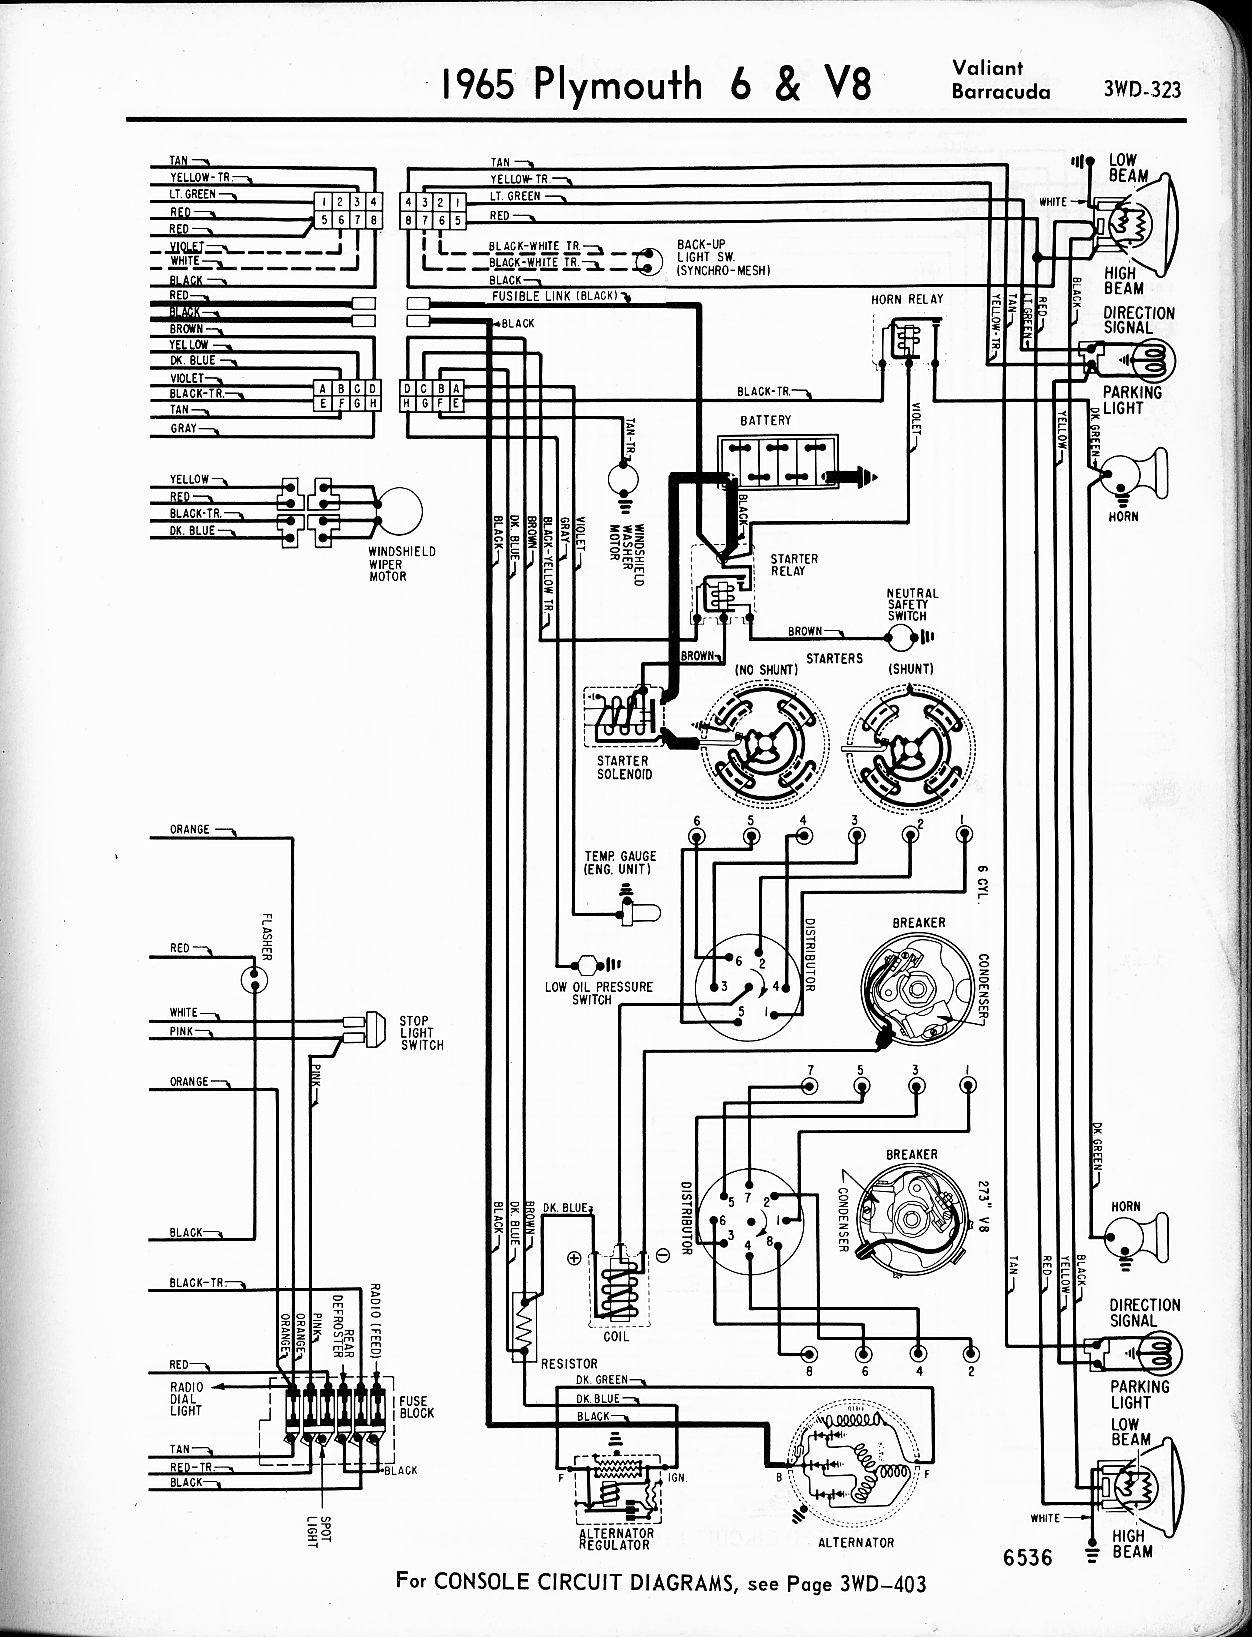 generous 917270760 craftsman wiring diagram model ideas Diagrams for Wiring Bathroom Fan and Lights  Diagram for Building Diagram for Electric Imp Icon for Wiring